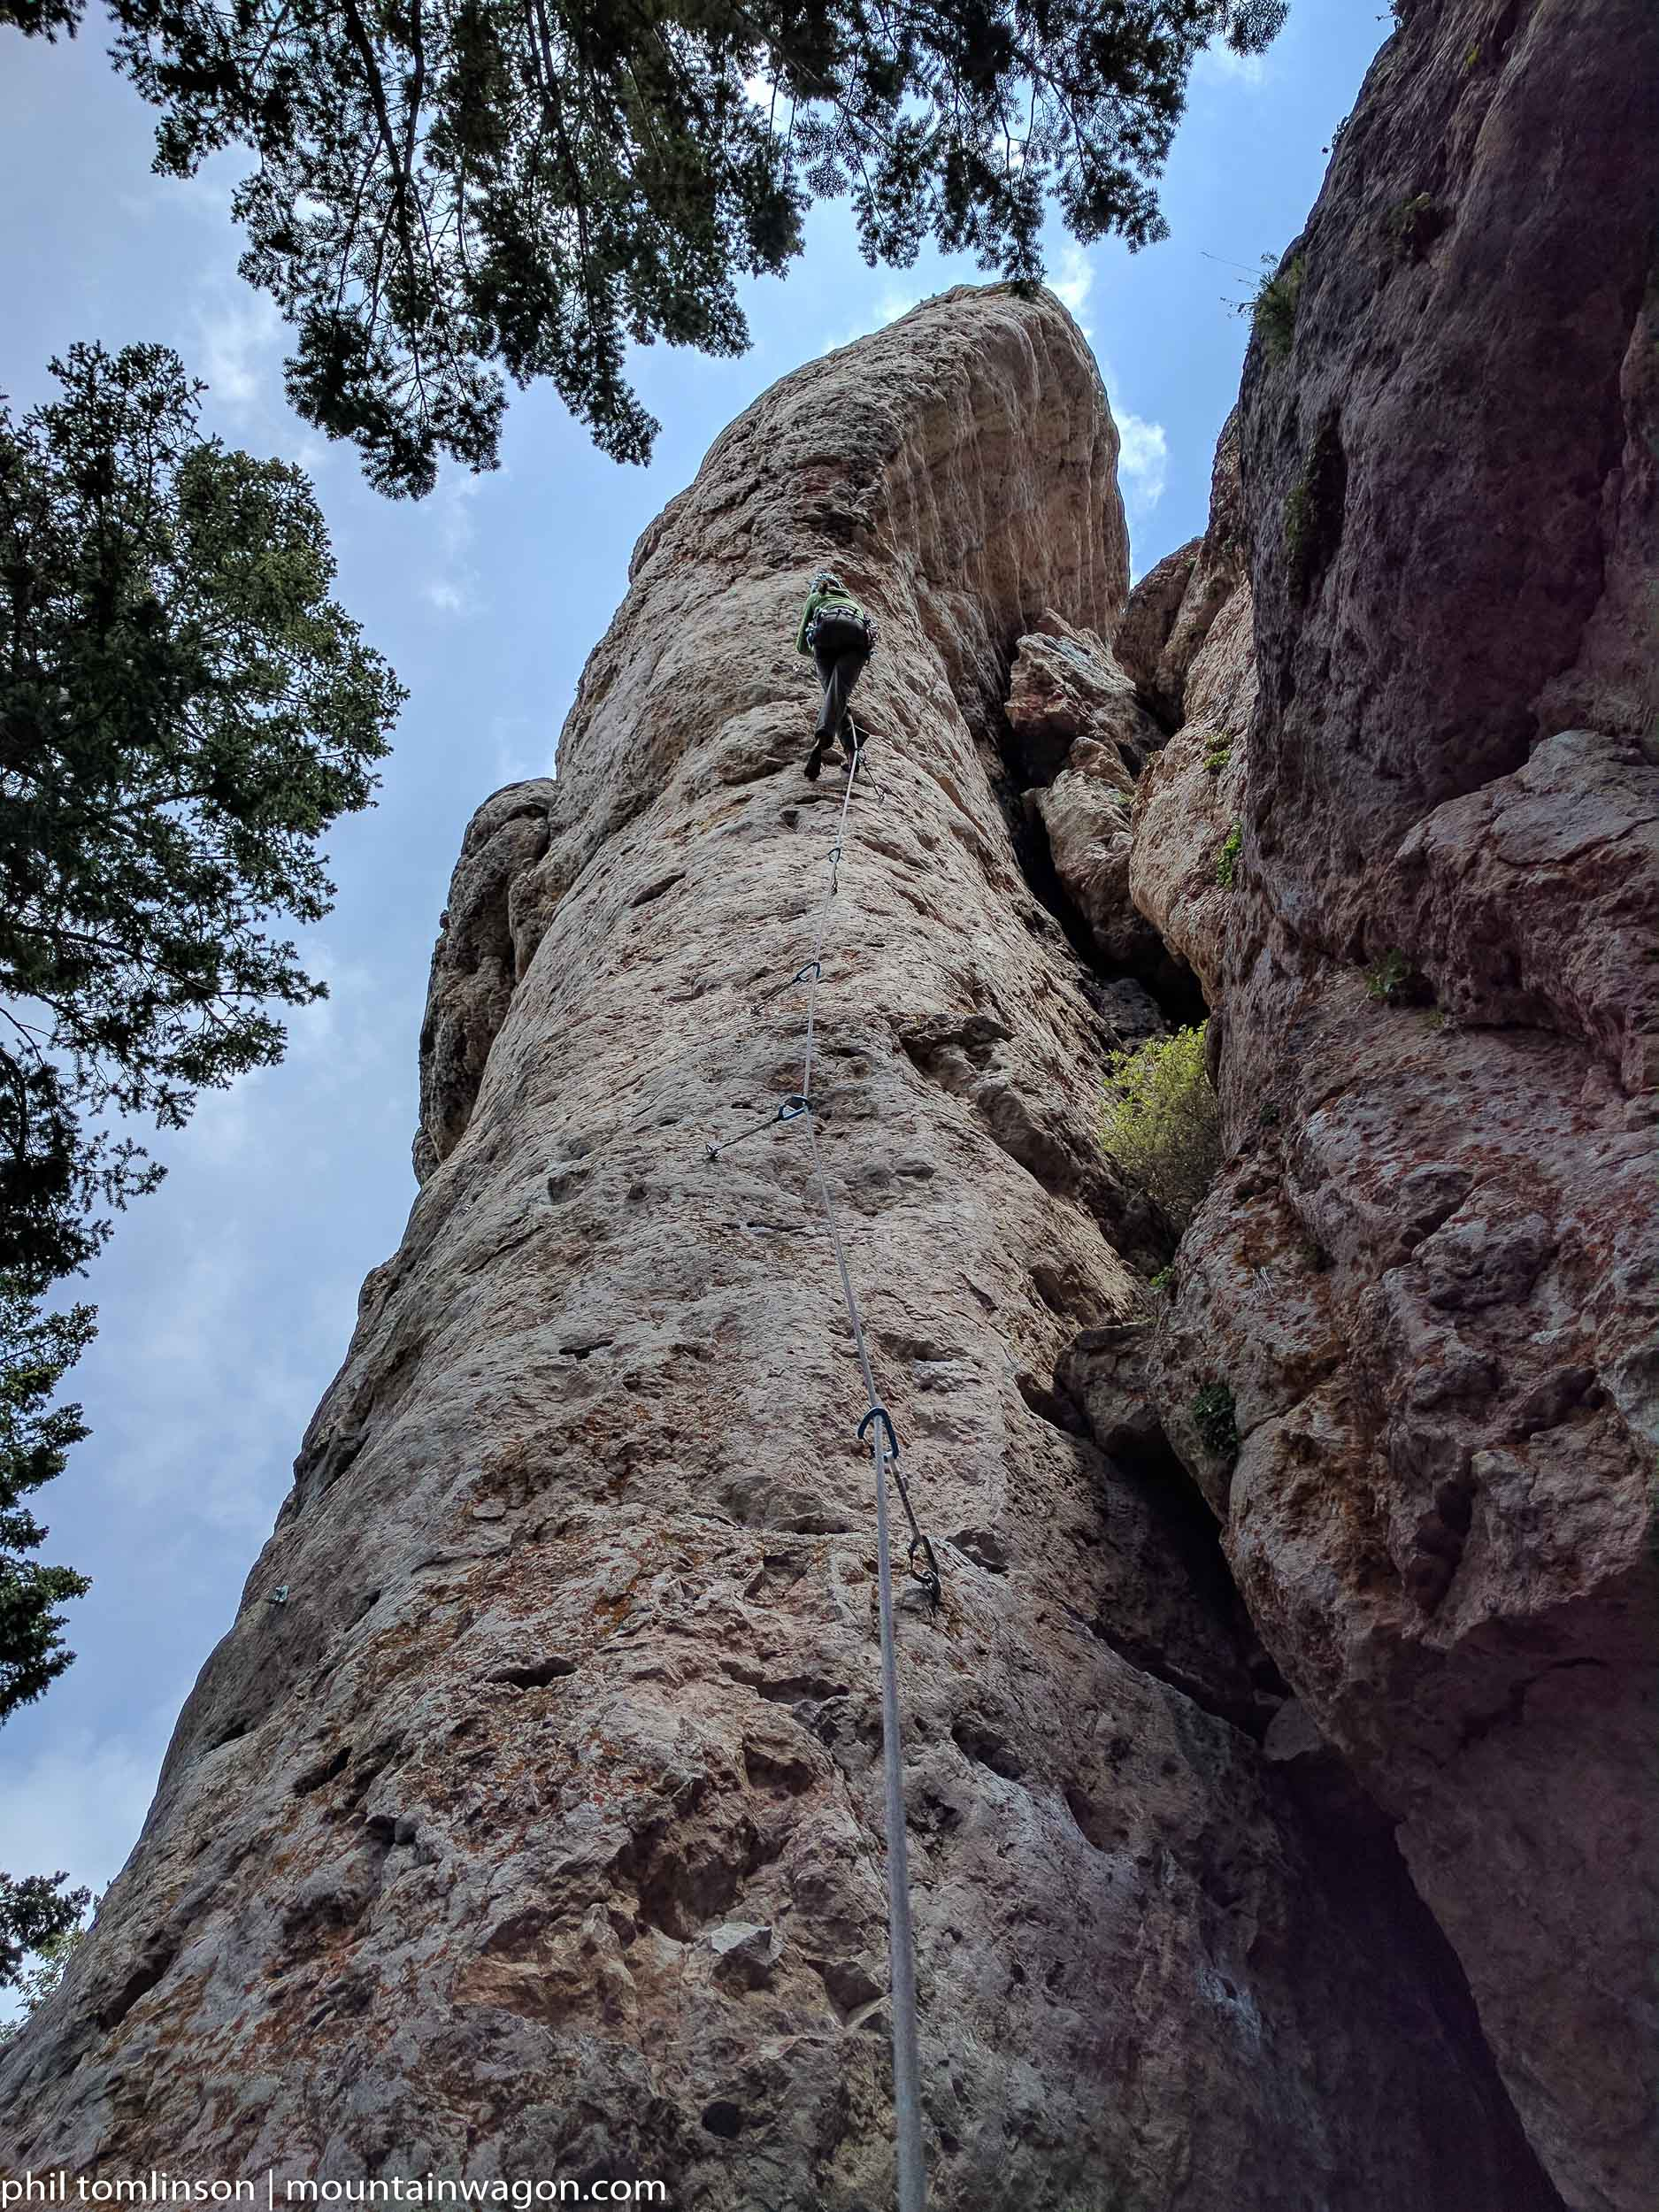 Climbing the Cobra at Ten Sleep, Wyoming